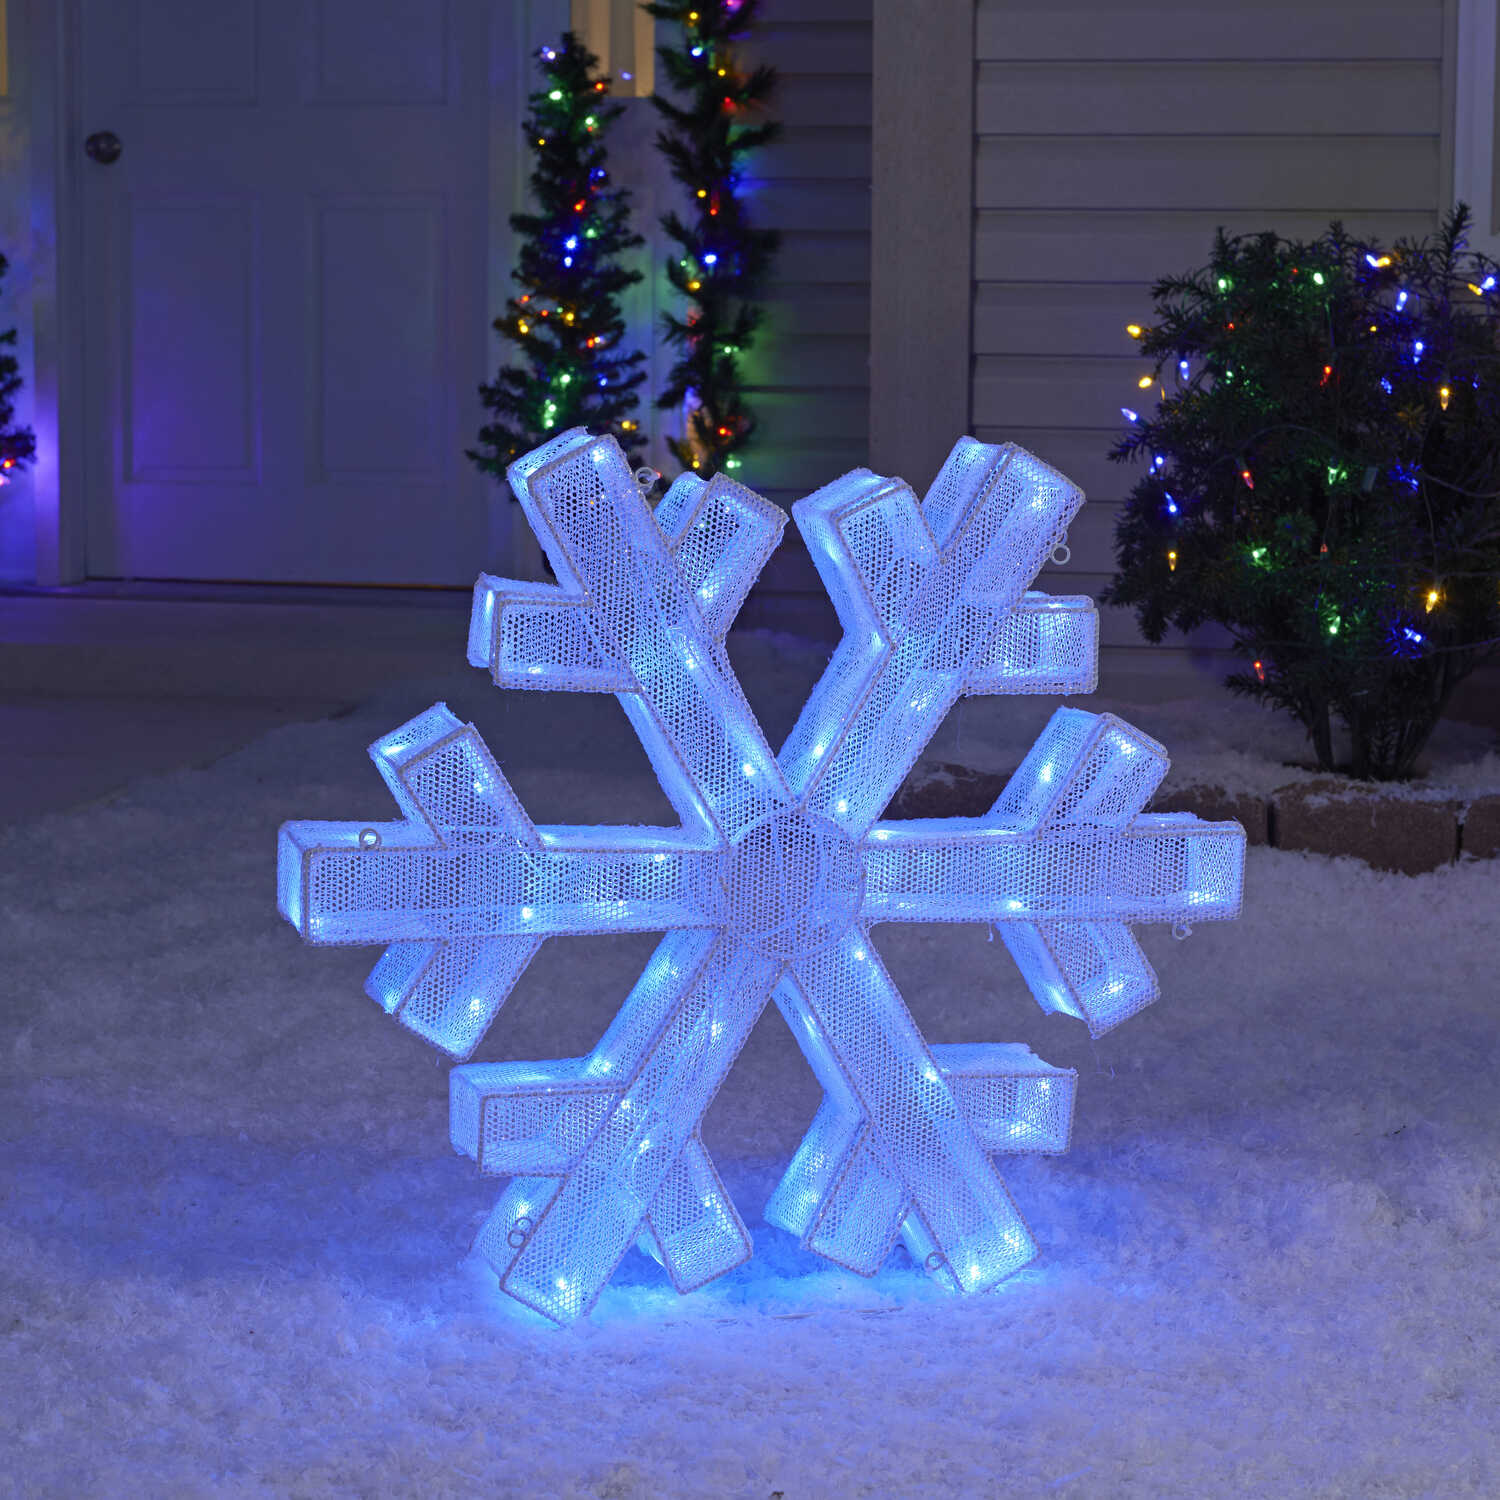 Sylvania  Illuminet  Snowflake  LED Yard Art  Mesh  White  1 pk